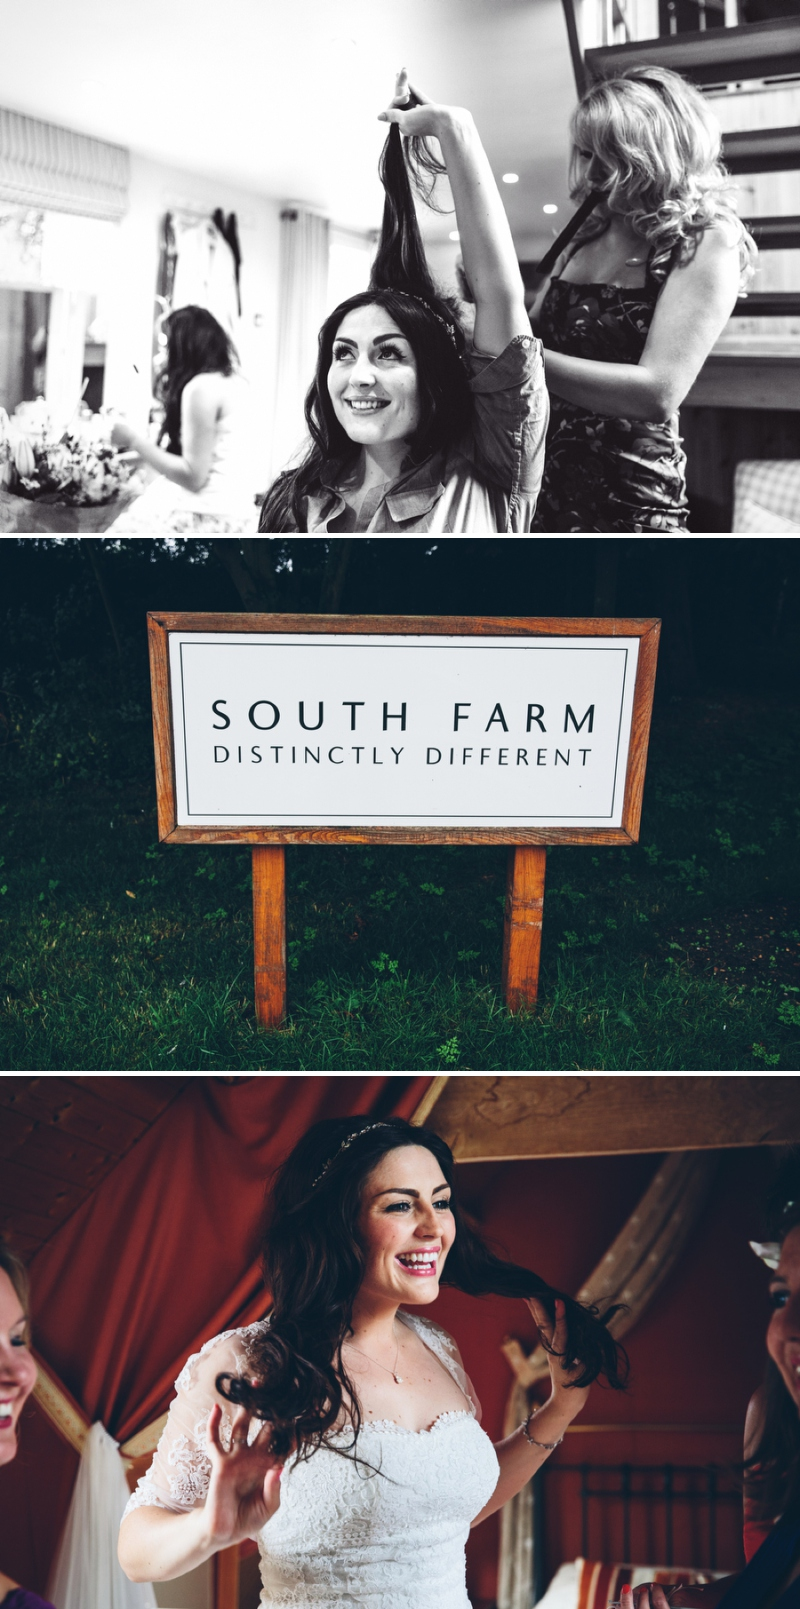 Festival fete style wedding at South farm with Urda gown by Pronovias by Mister Phill Photography_0547